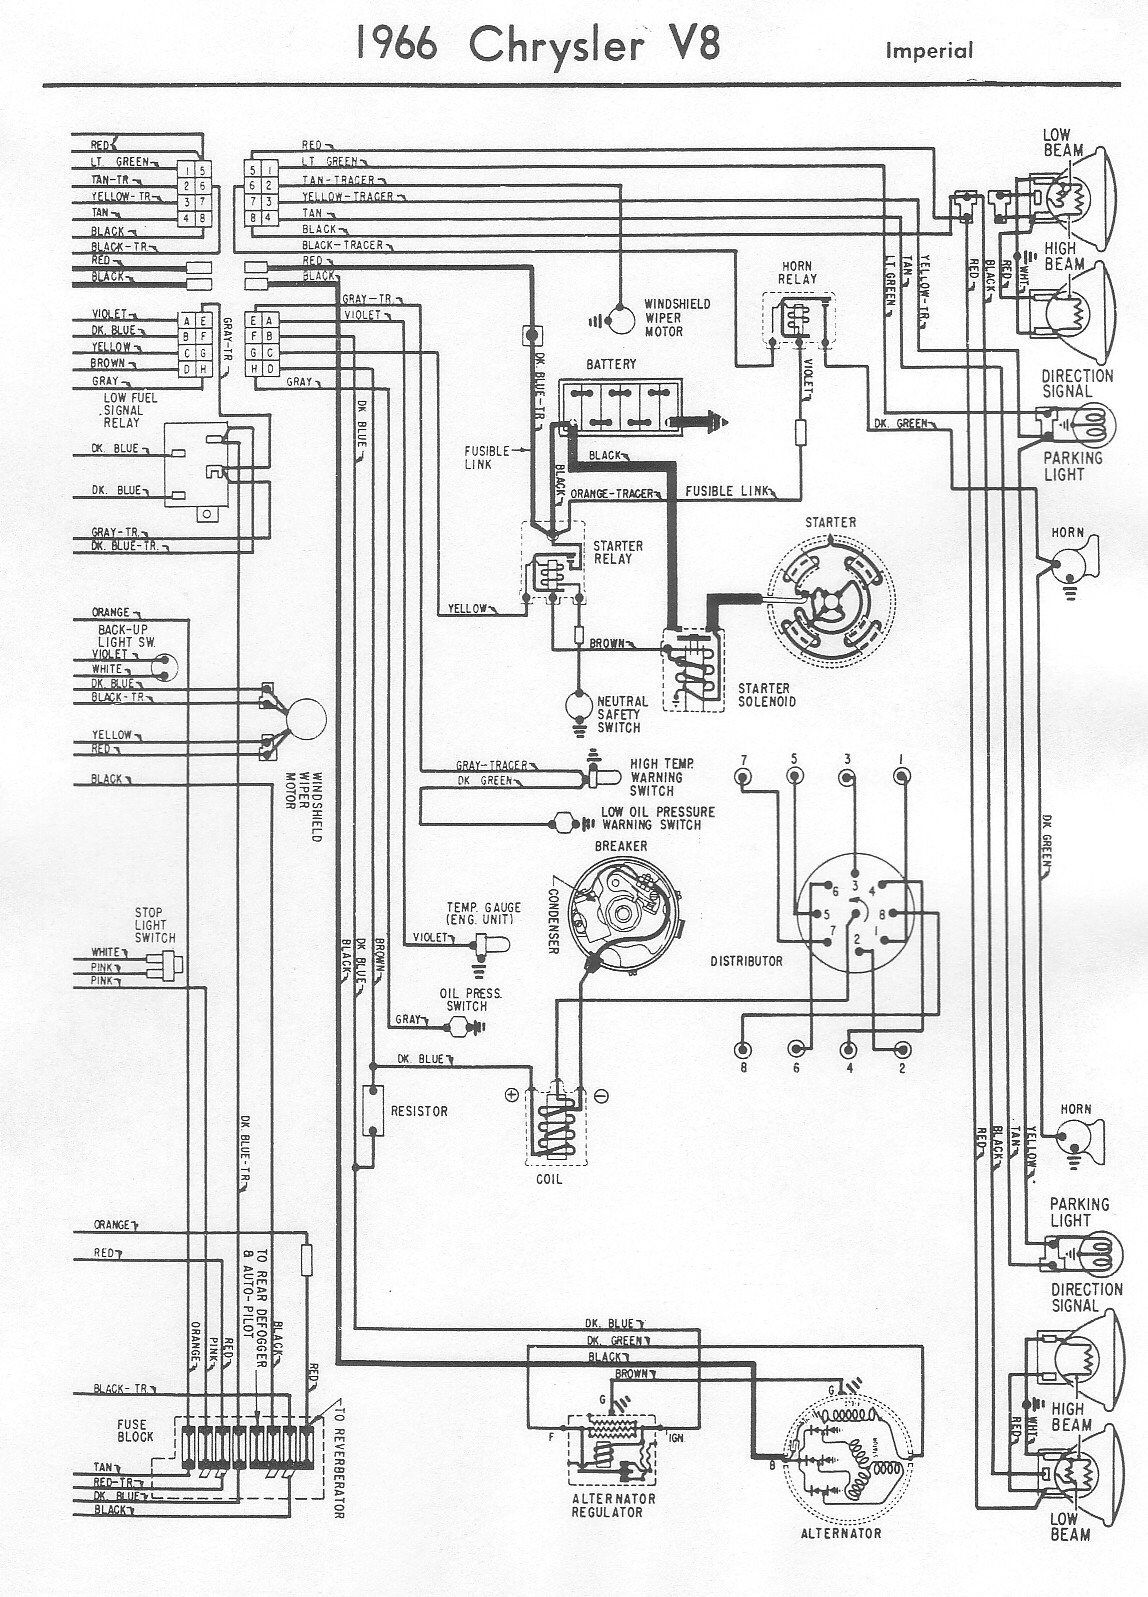 1964 Chrysler Newport Wiring Diagram Diagrams Option Ford Galaxie Ignition F100